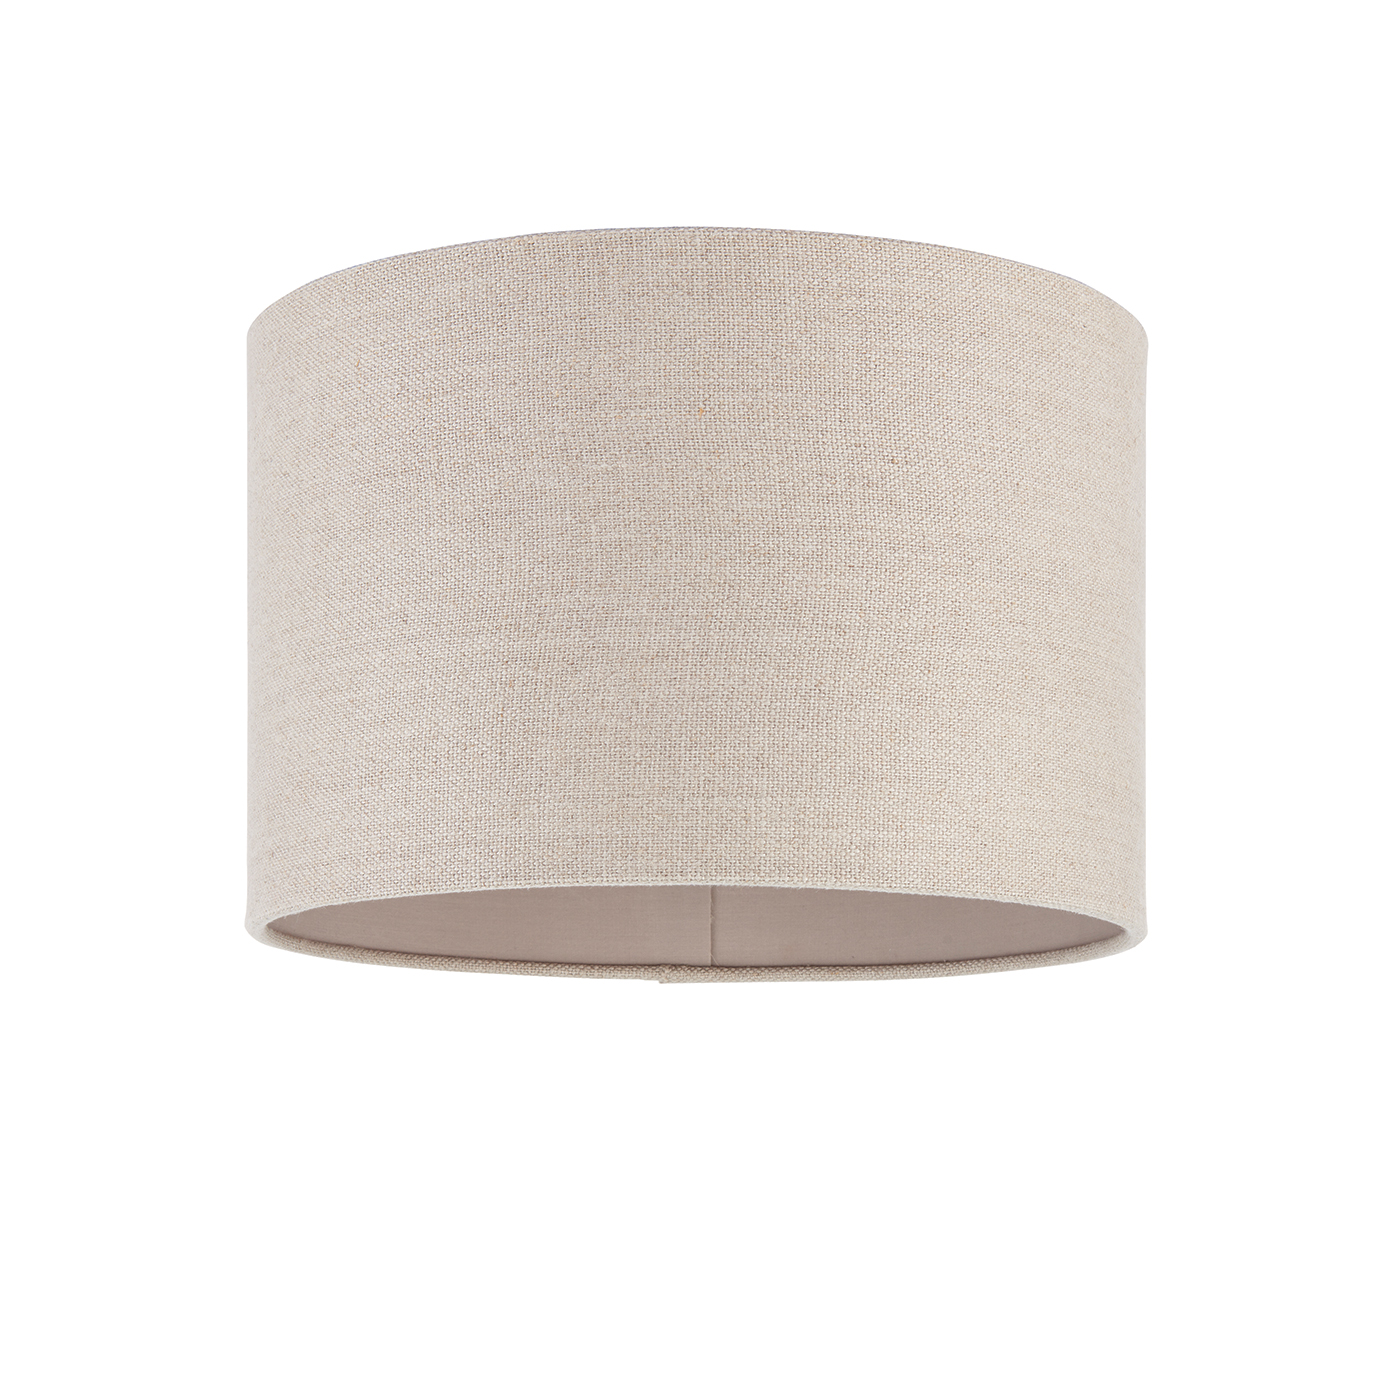 Endon Obi lampshade 12 inch Natural linen polyester cotton 200mm H x 300mm D